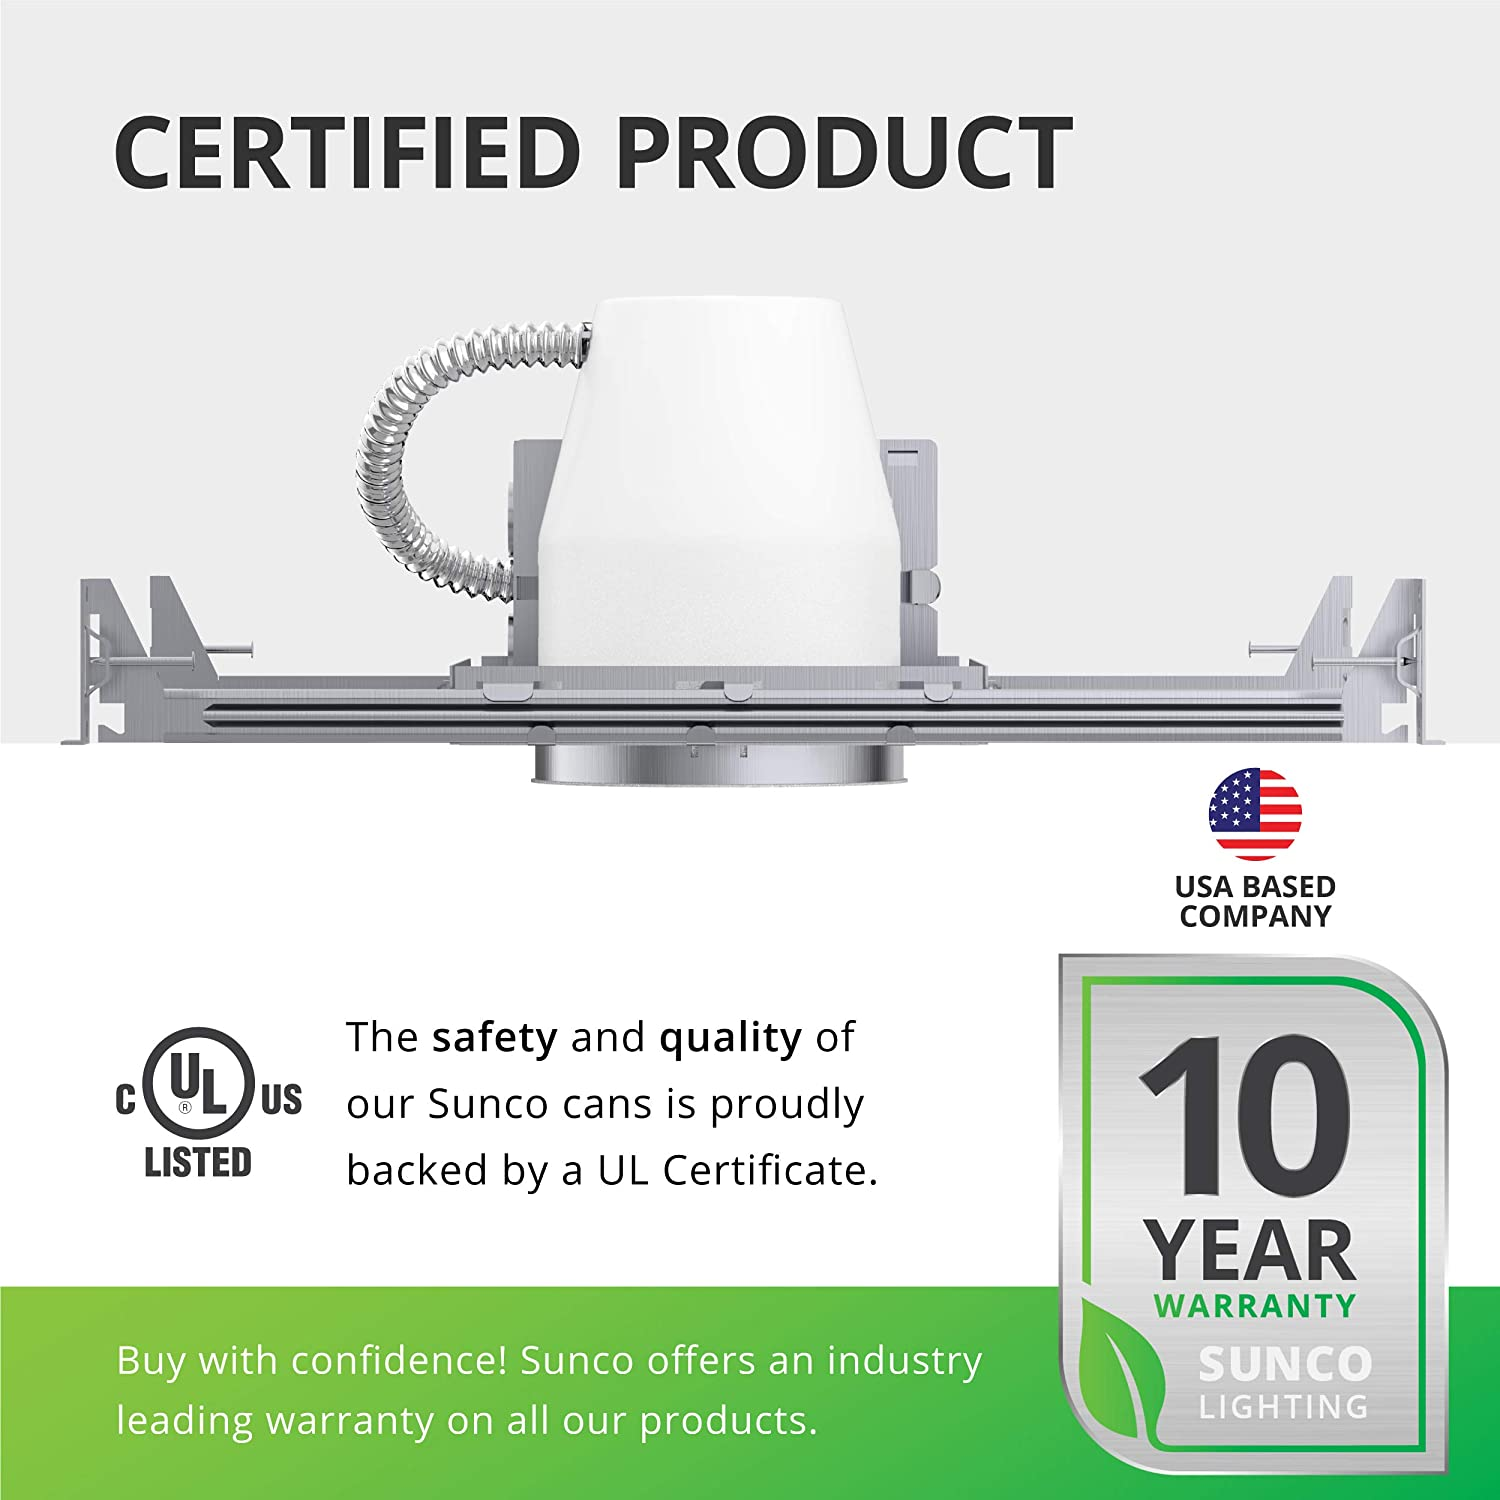 Air Tight IC Rated Steel Can UL /& Title 24 Compliant TP24 Connector Included for Easy Install 120-277V Sunco Lighting 6 Pack 4 Inch New Construction Housing